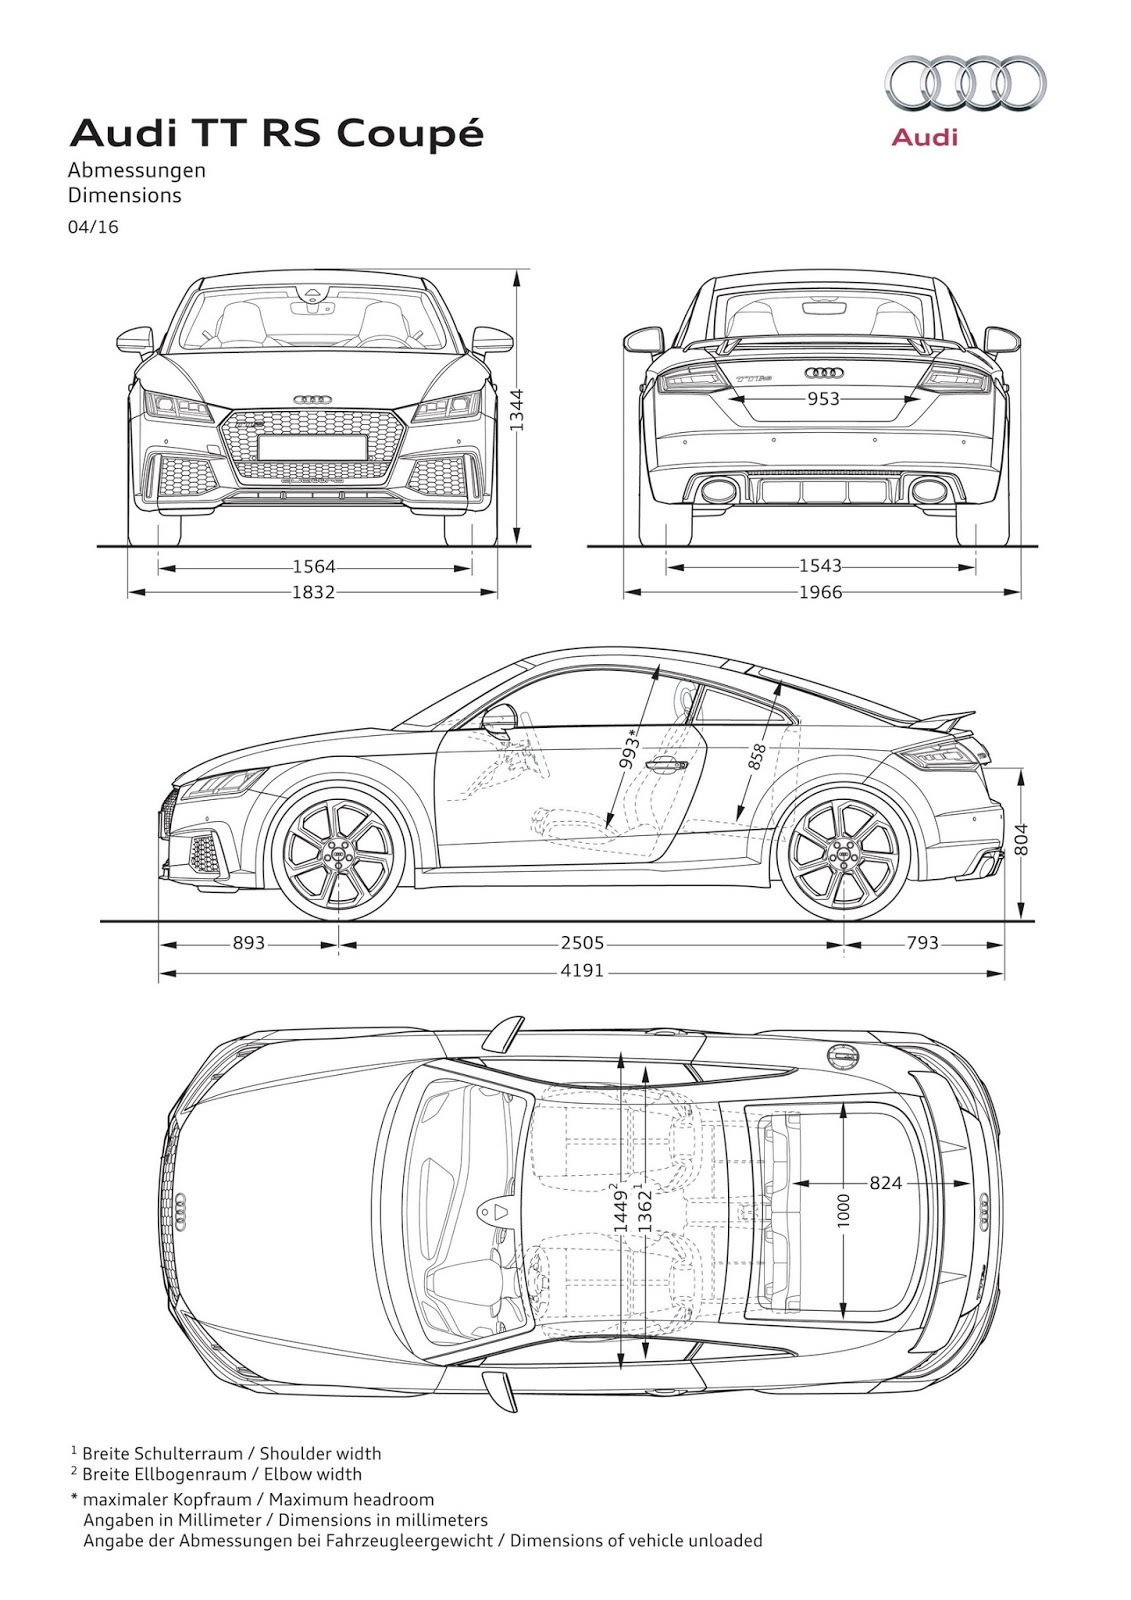 2017 Audi TT RS Roadster & Coupe Bring Five-Cylinders With